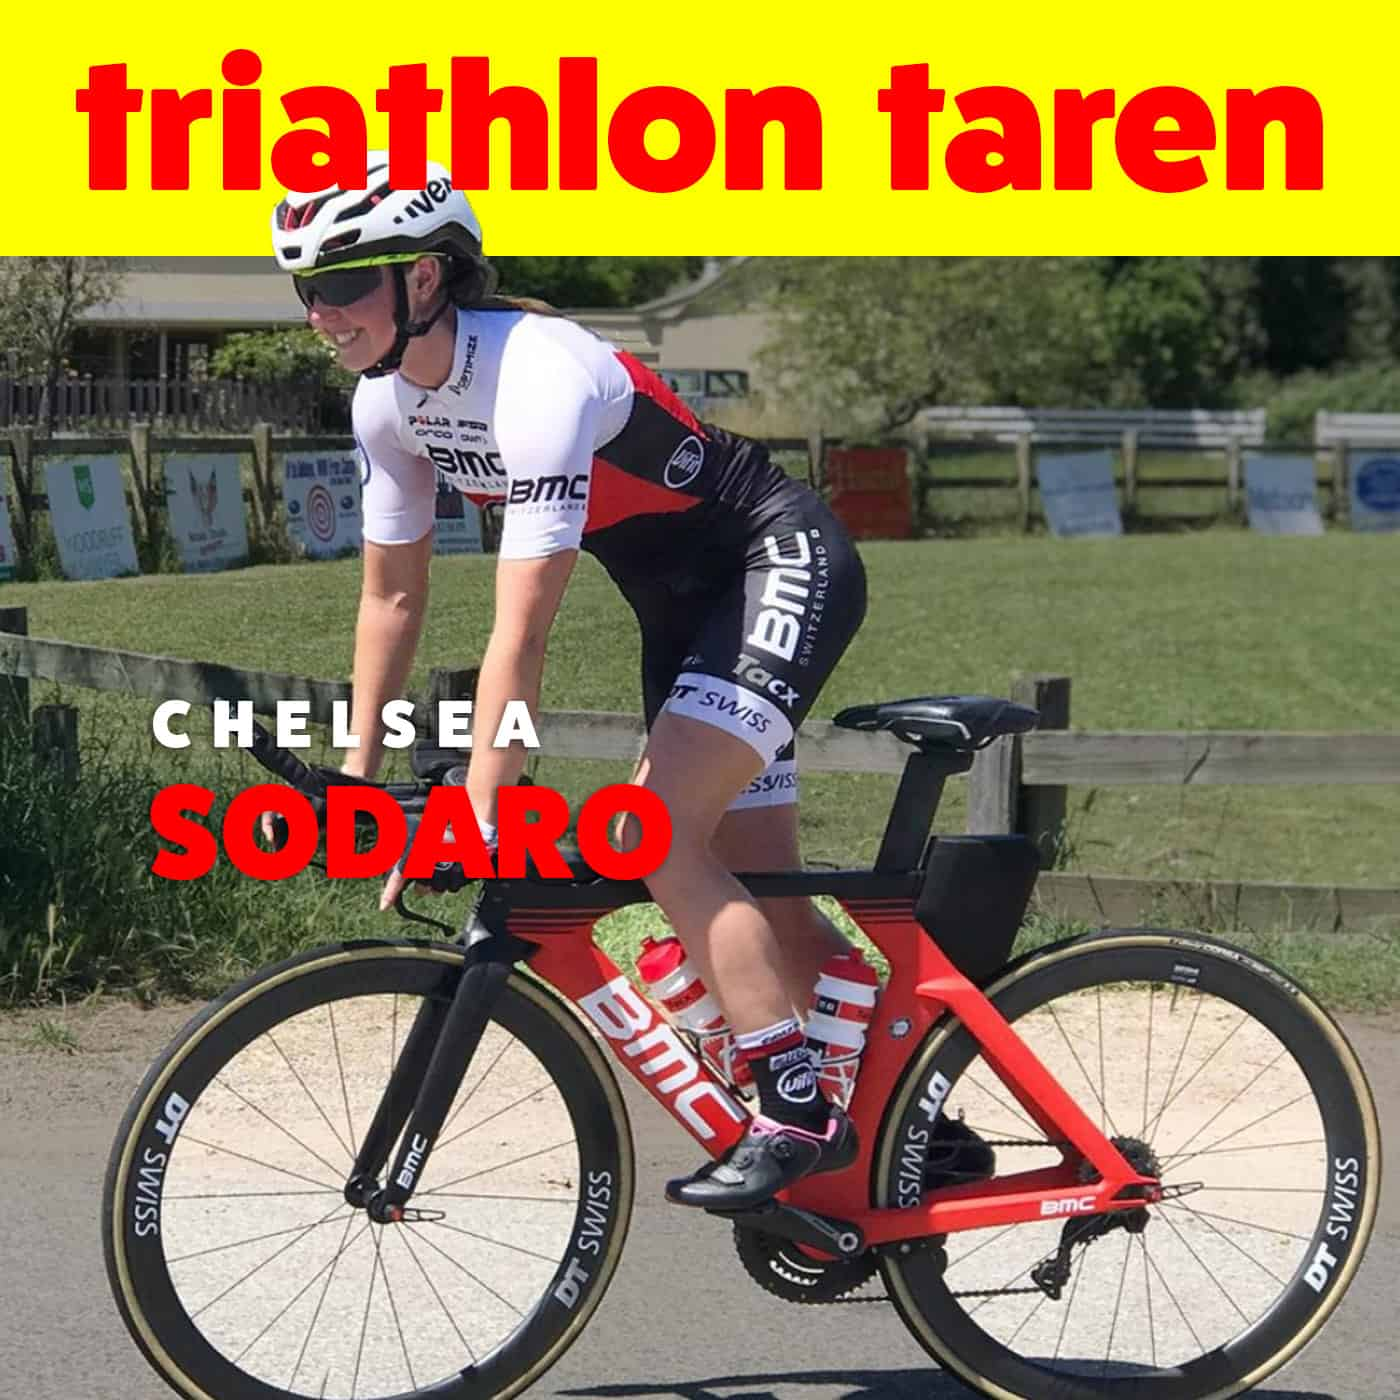 Professional Triathlete Chelsea Sodaro